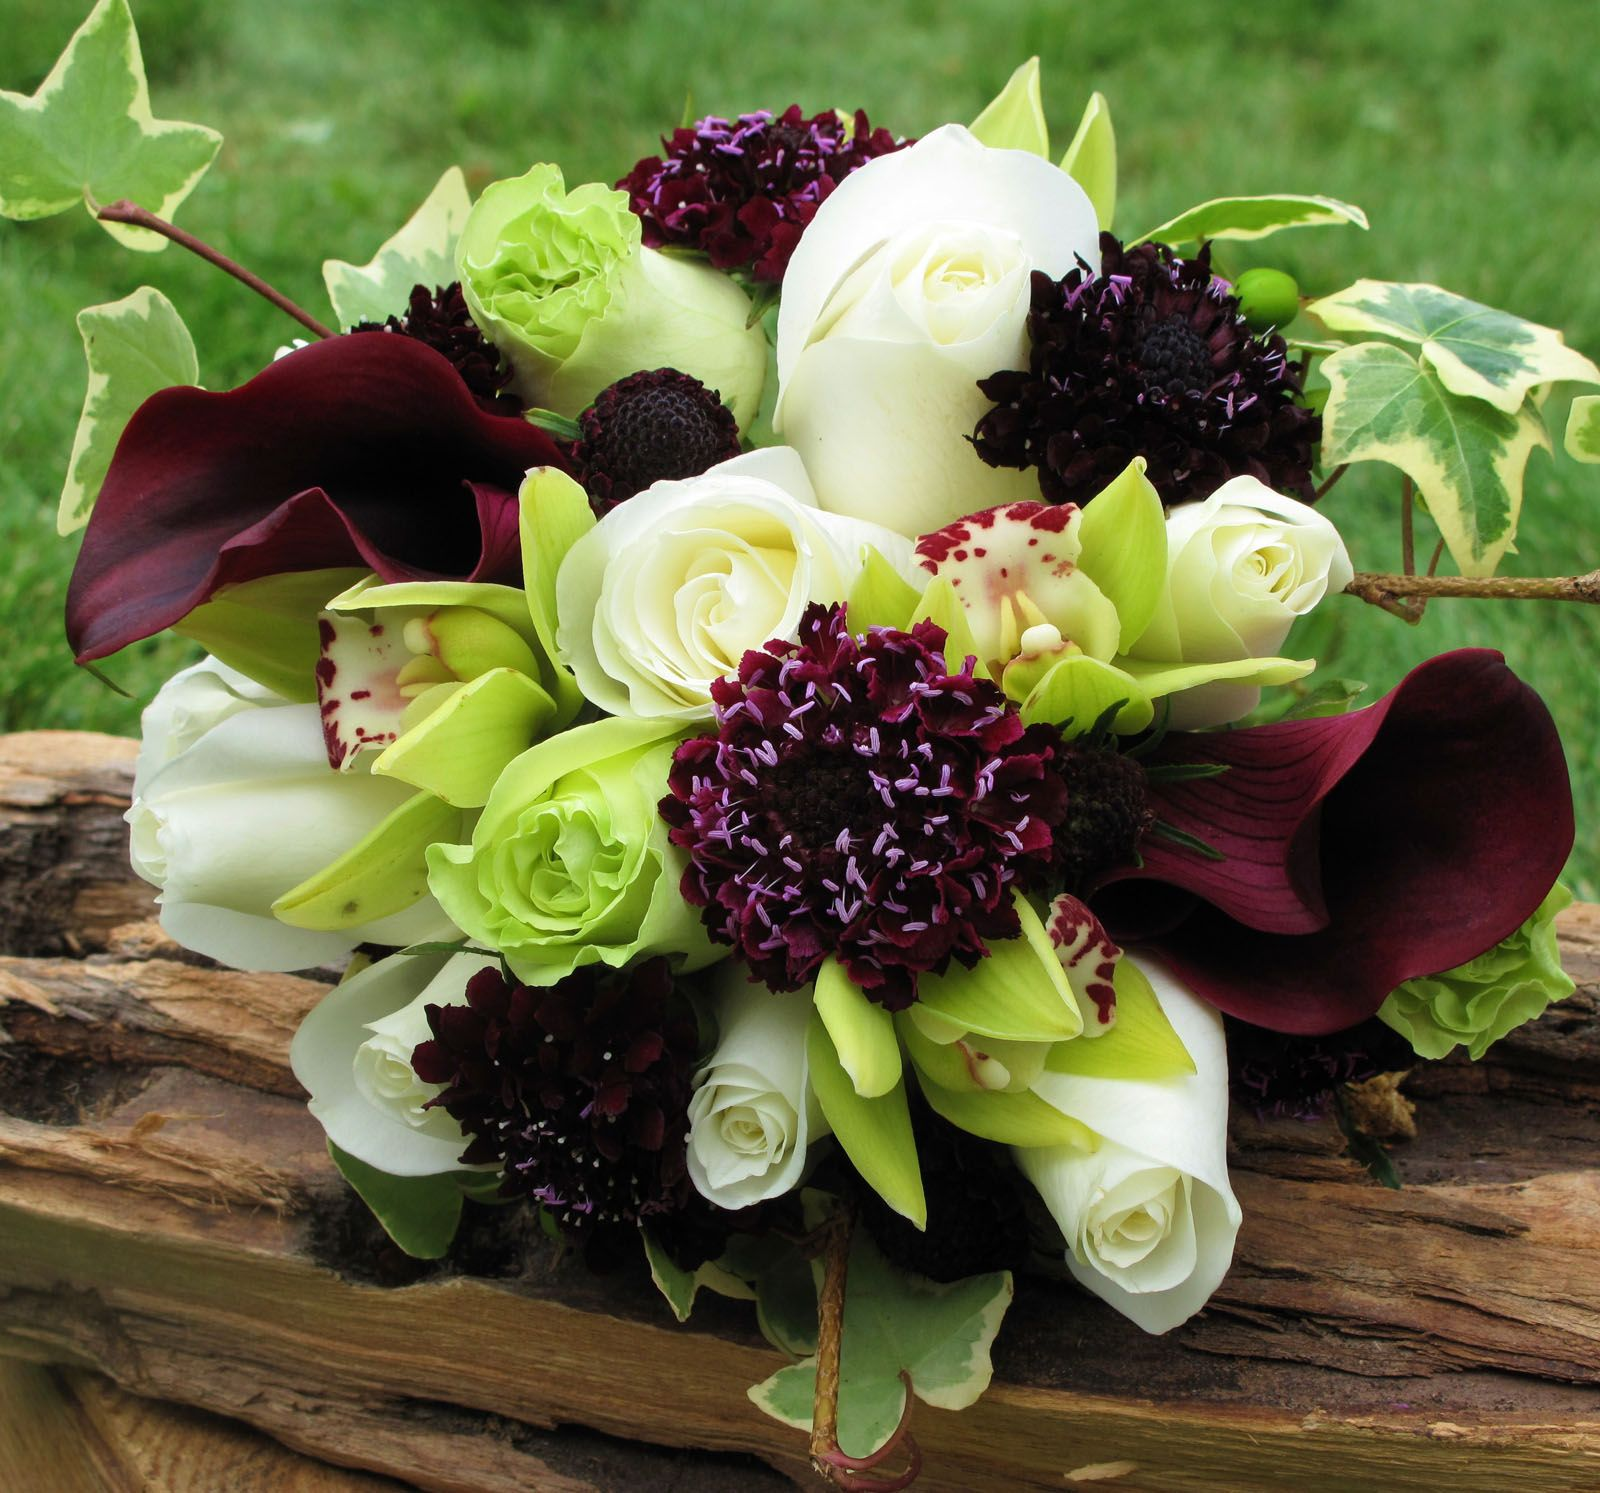 Vermont Wedding Flowers: Burgundy, White And Green Wedding Bouquet Including Roses